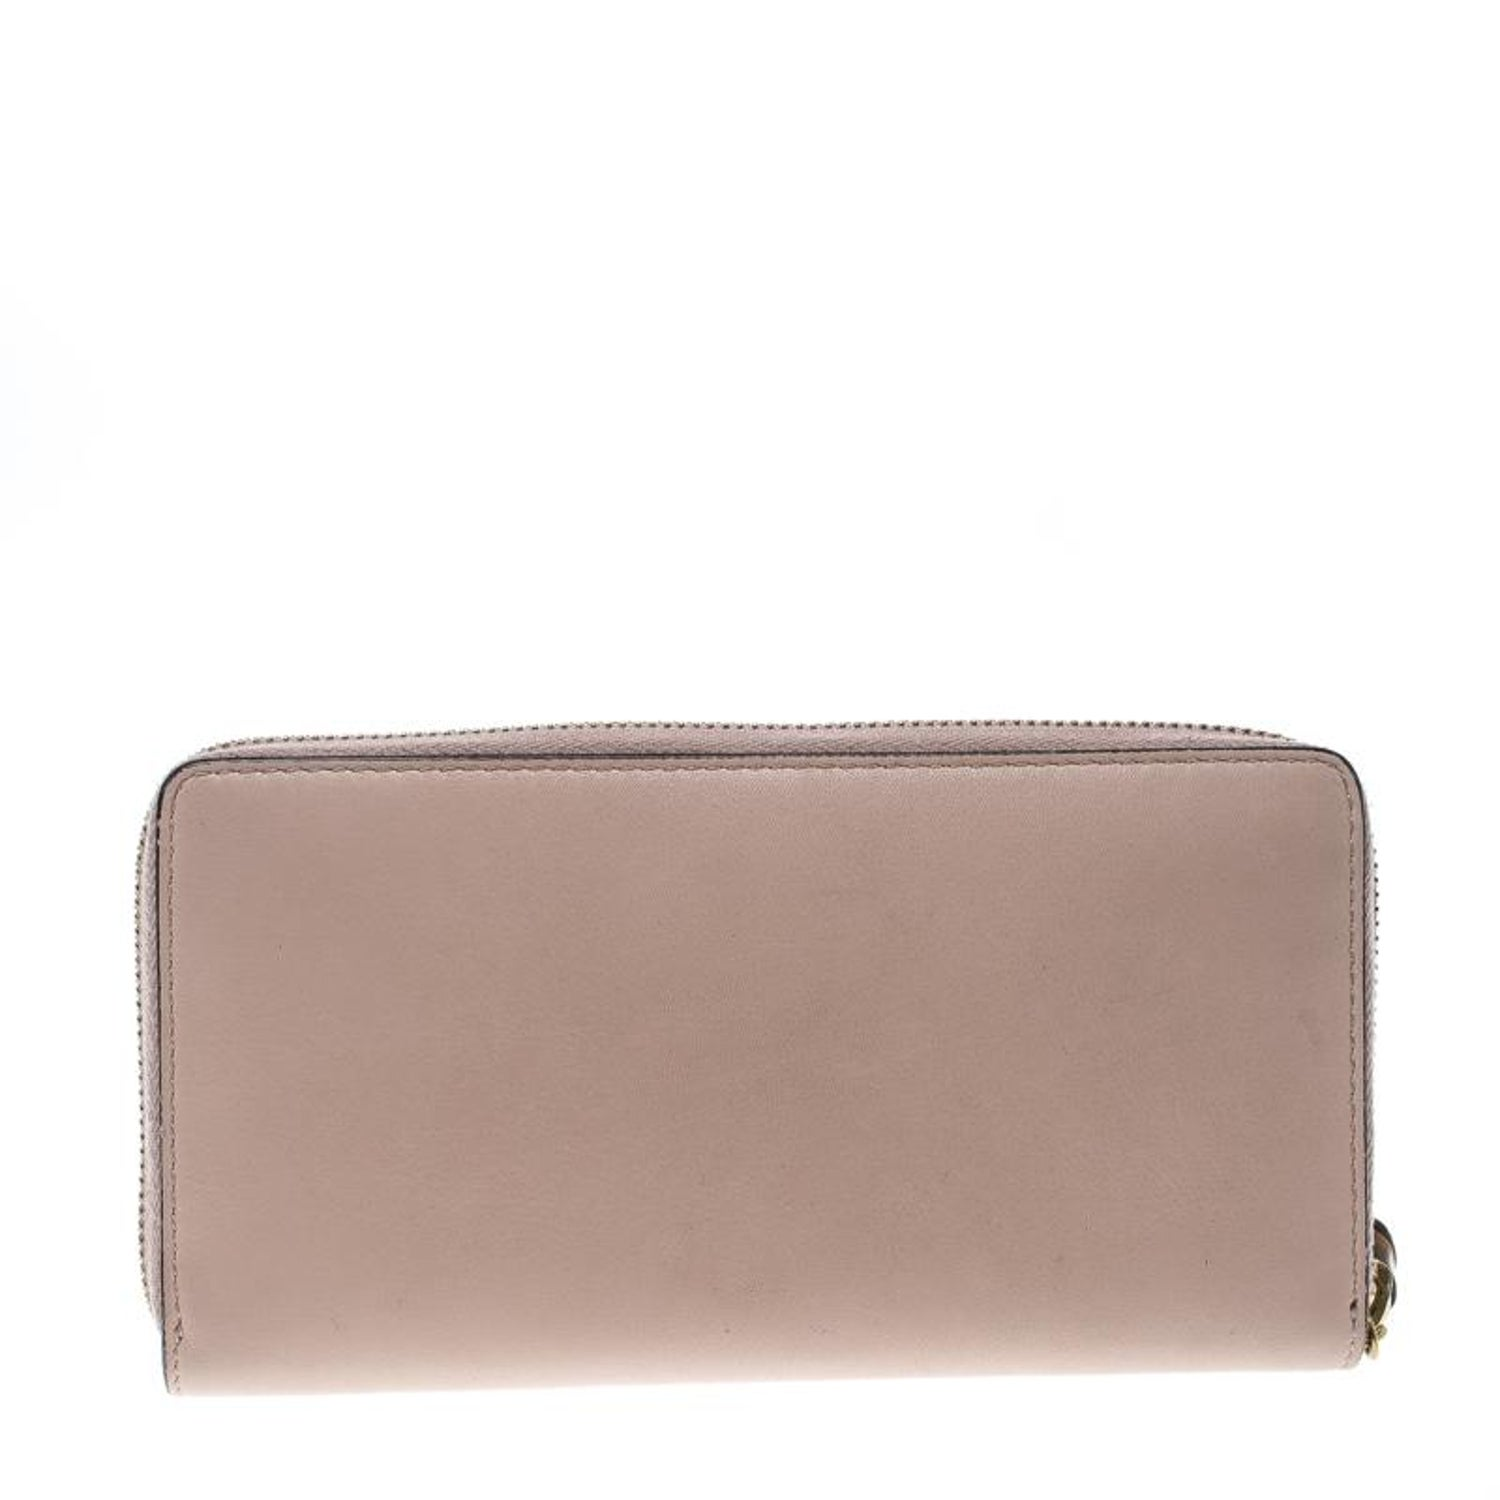 26c053d68e9f Gucci Blush Pink Leather Bamboo Zip Around Wallet For Sale at 1stdibs